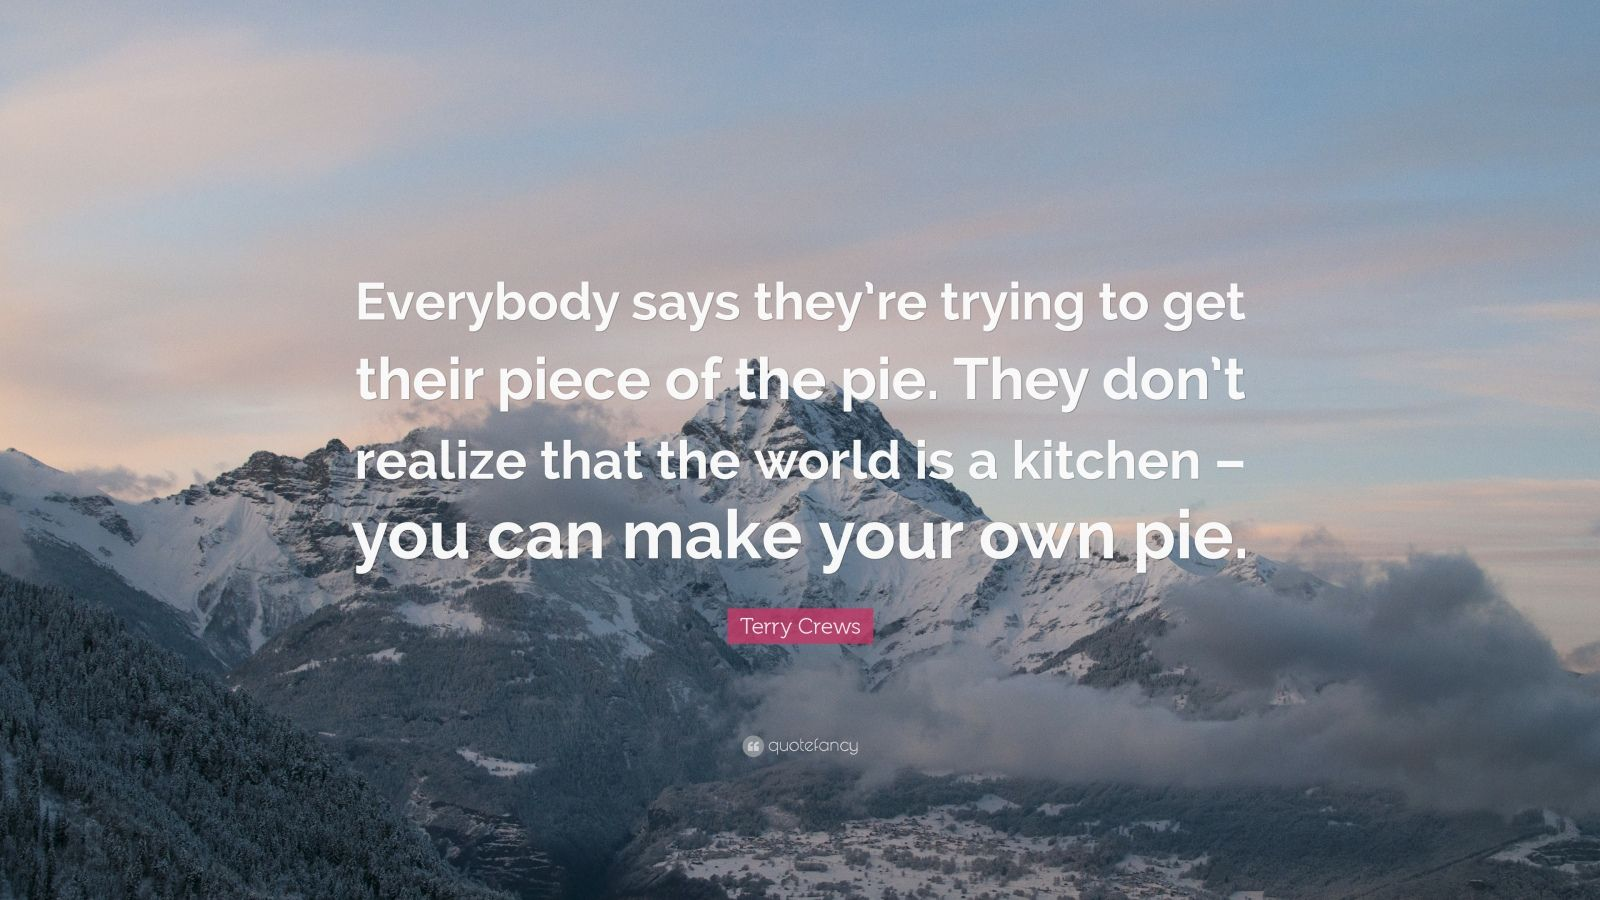 Terry Crews Quote Everybody Says They Re Trying To Get Their Piece Of The Pie They Don T